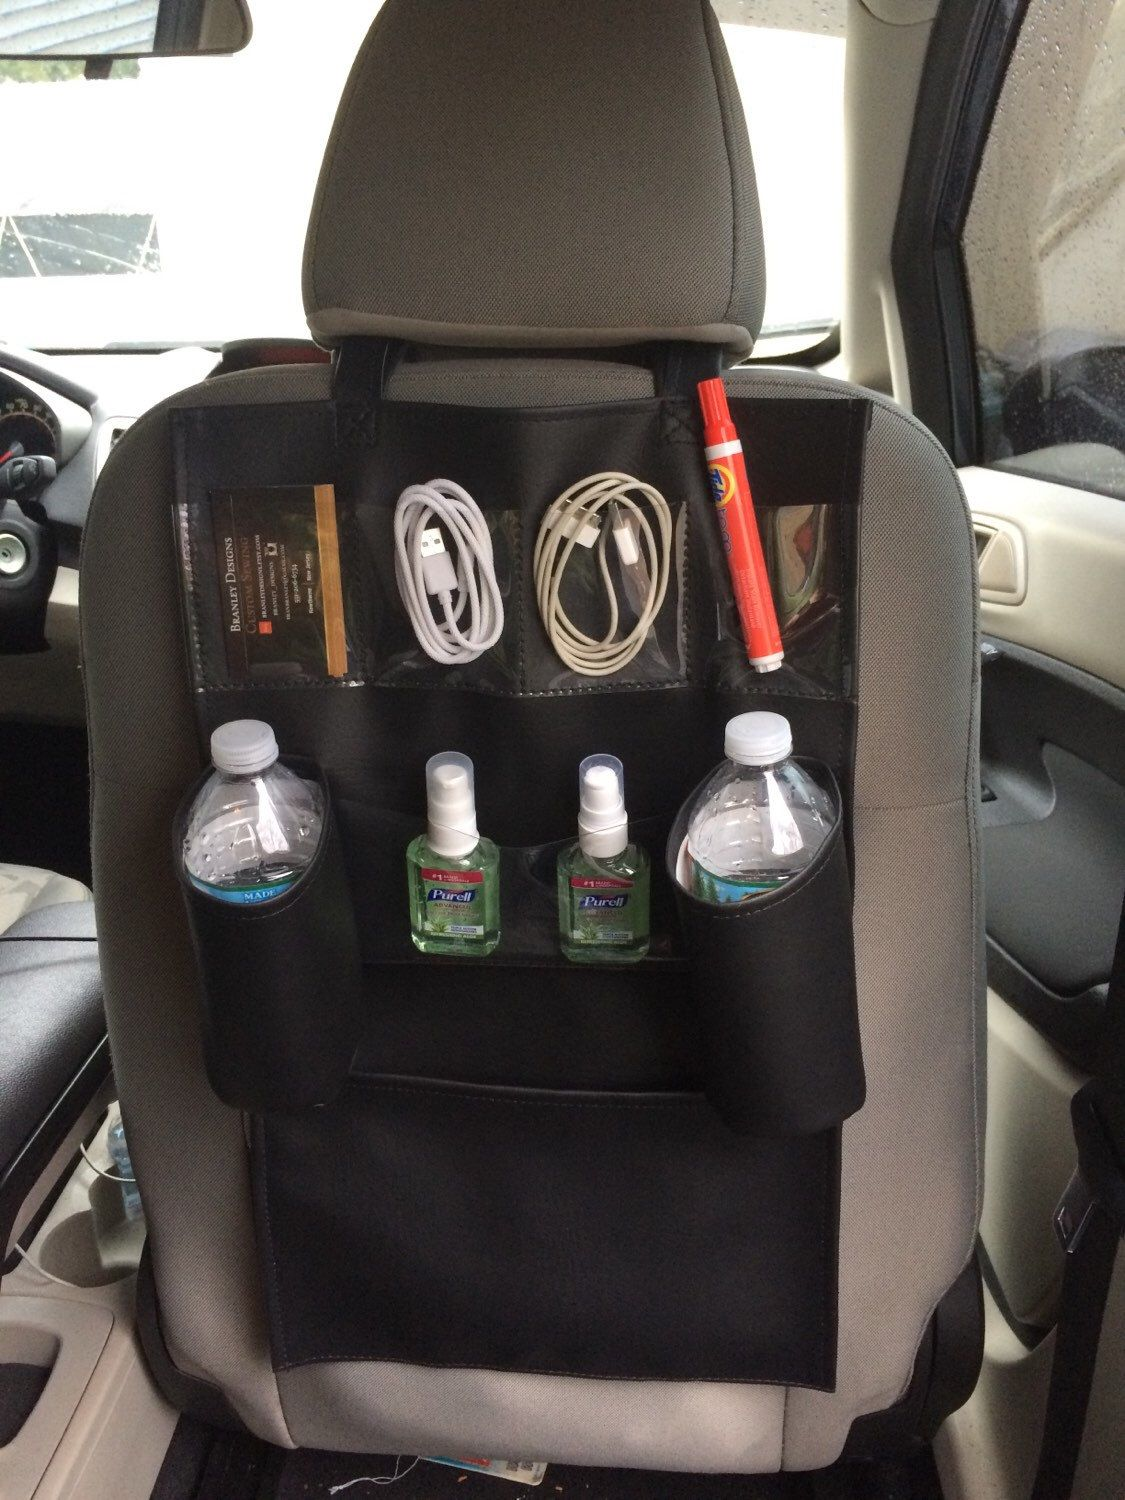 Uber Seat Back Organizer By Branleydesigns On Etsy Https Www